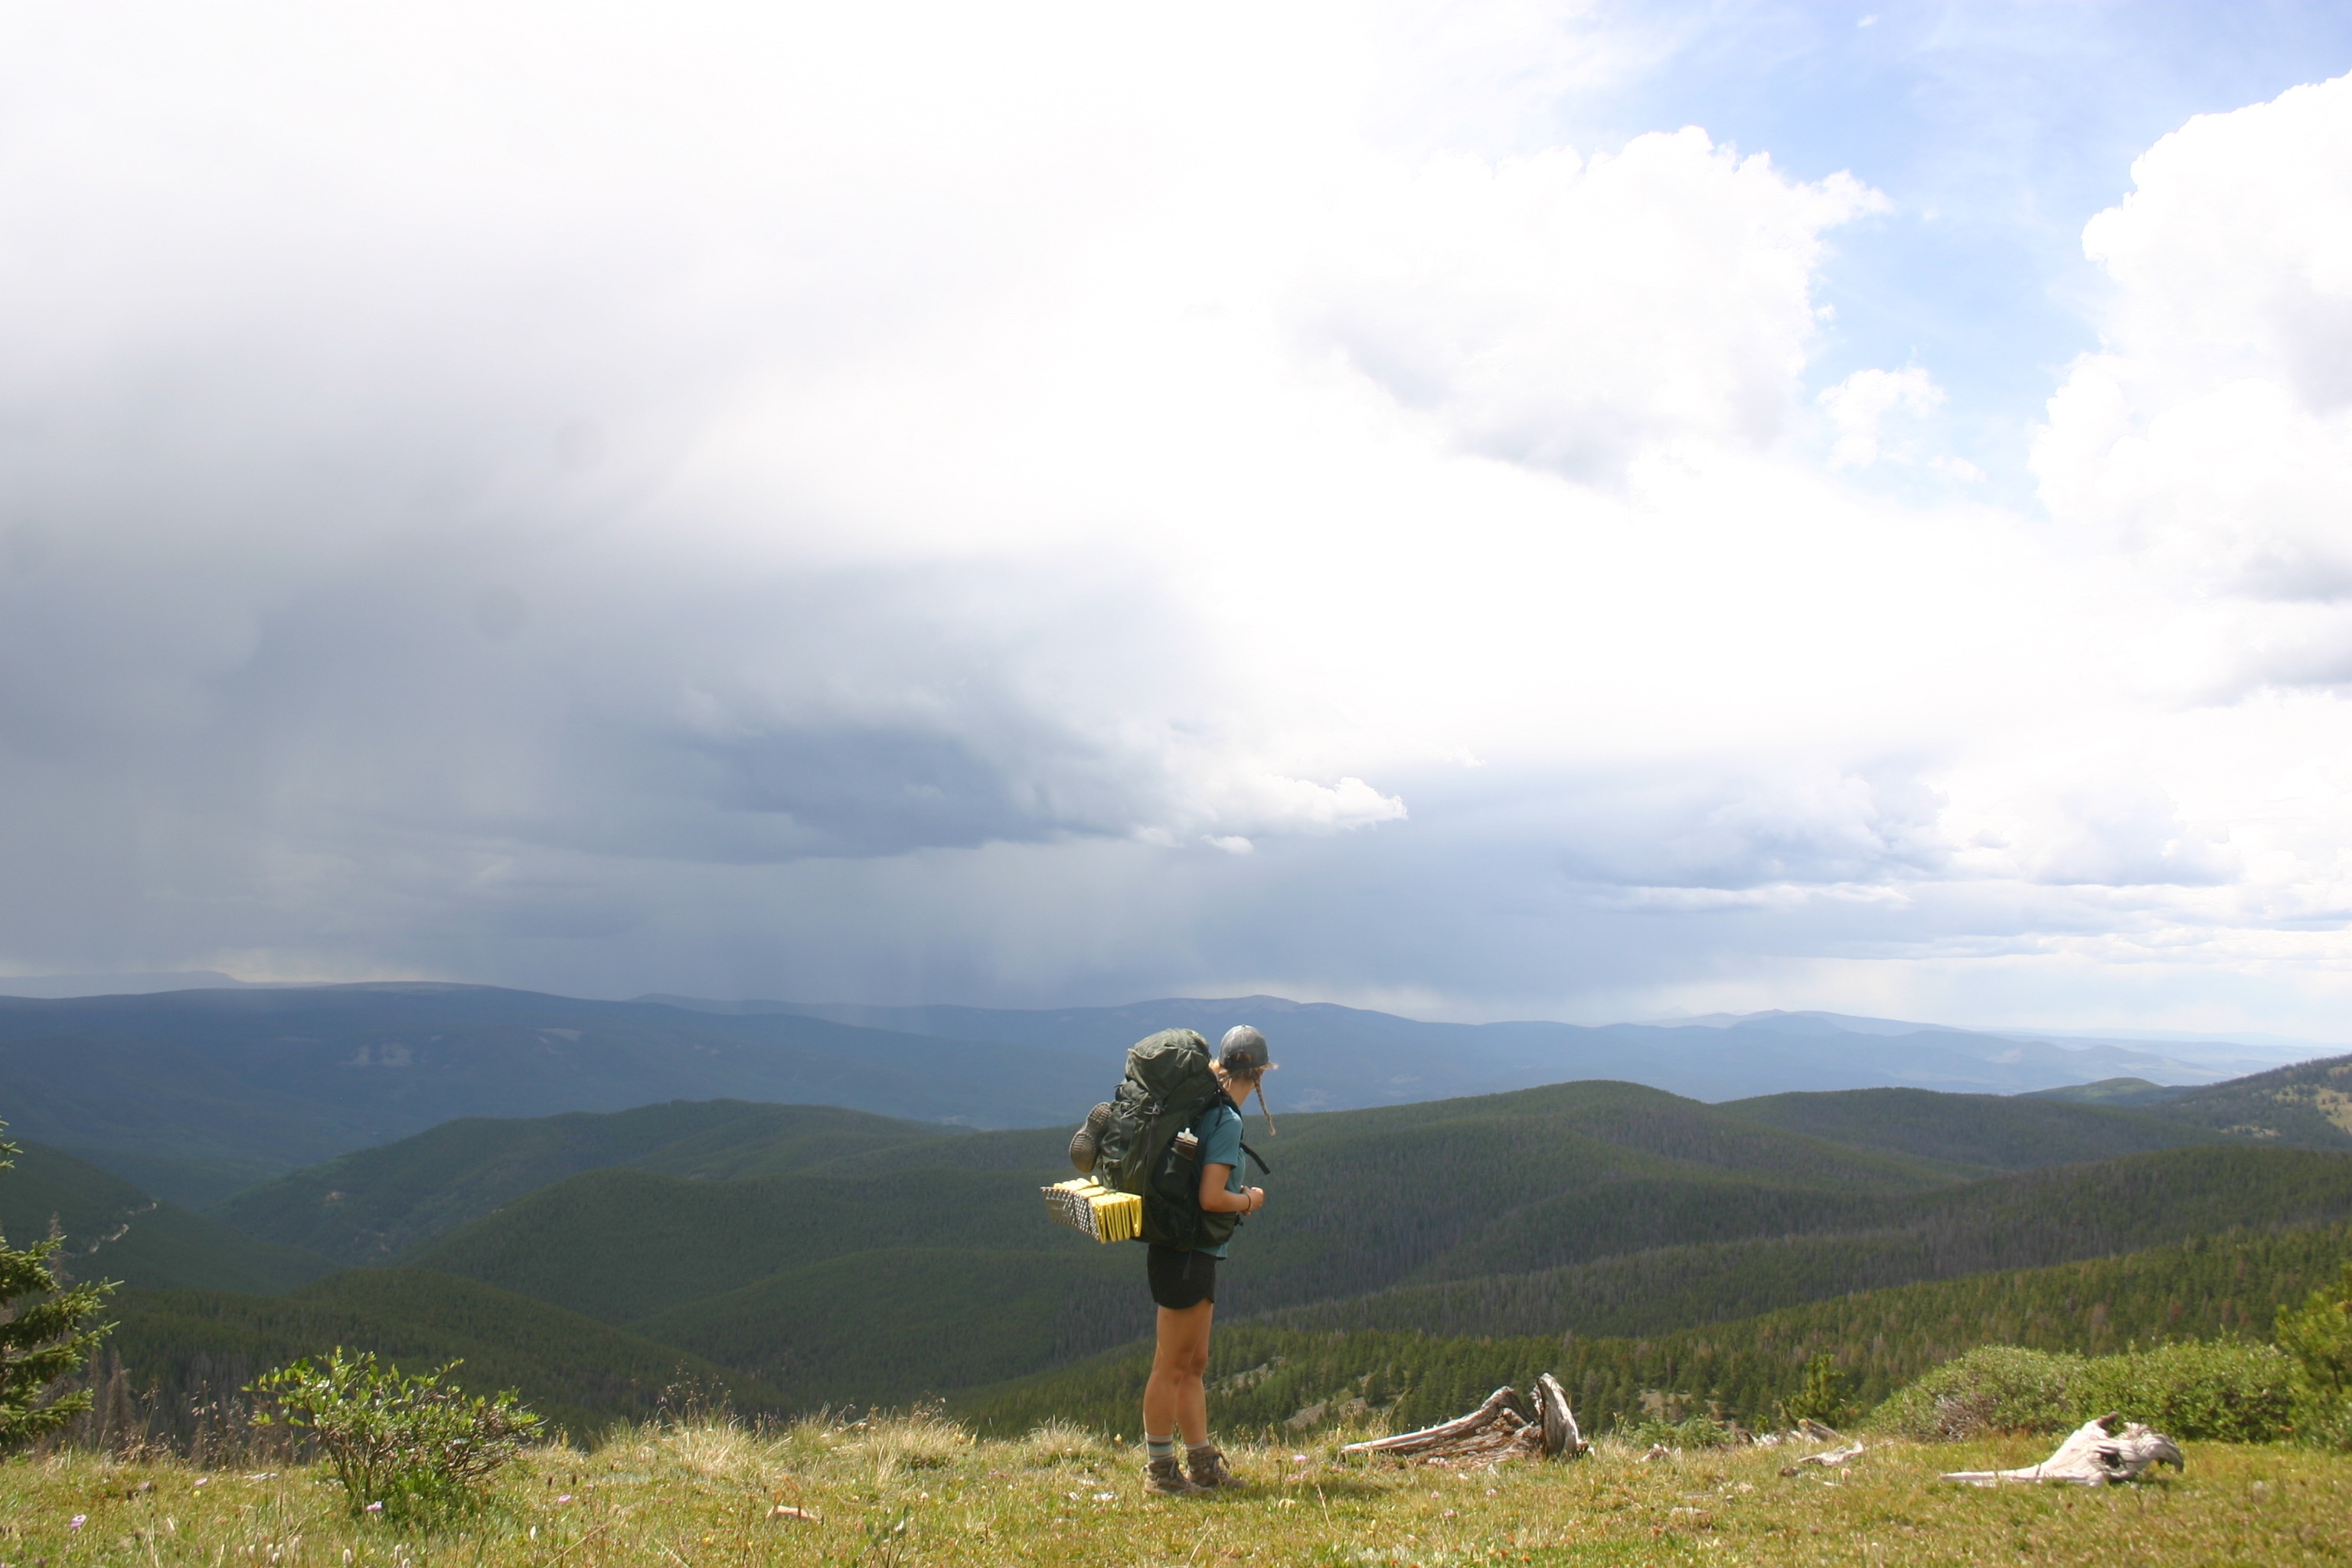 Kenna Kuhn overlooks a mountain valley while backpacking